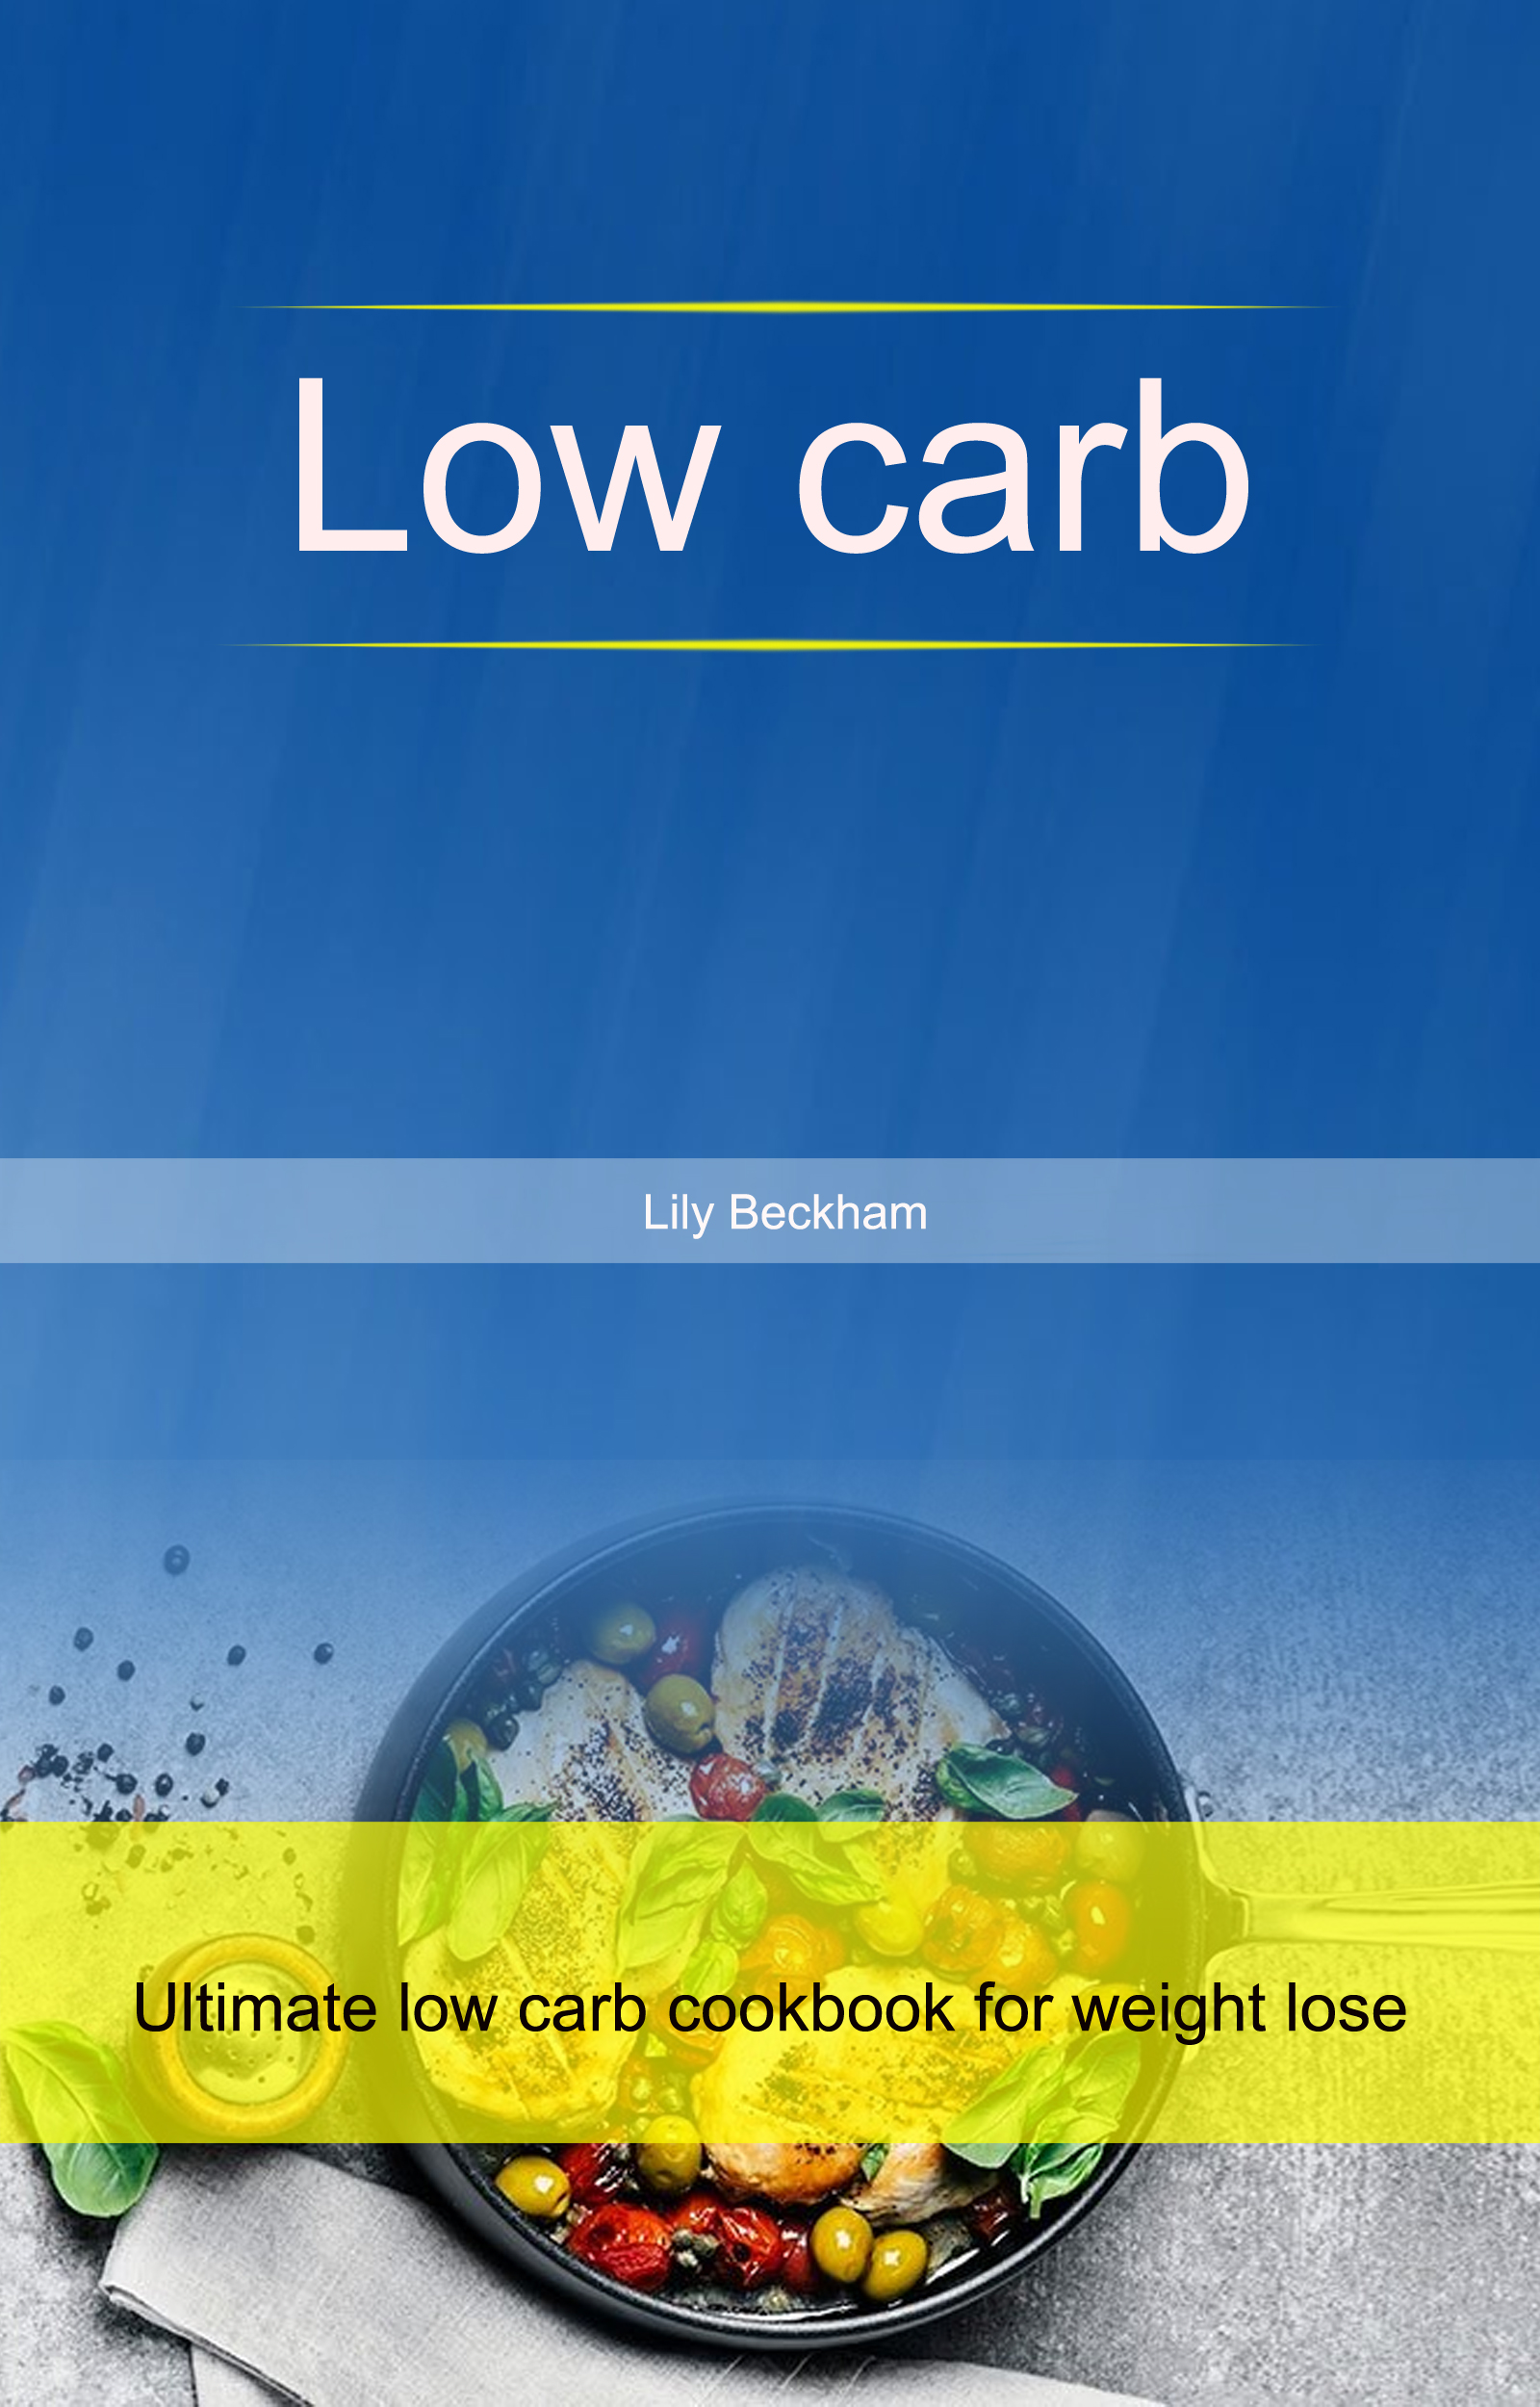 Low carb: ultimate low carb cookbook for weight lose